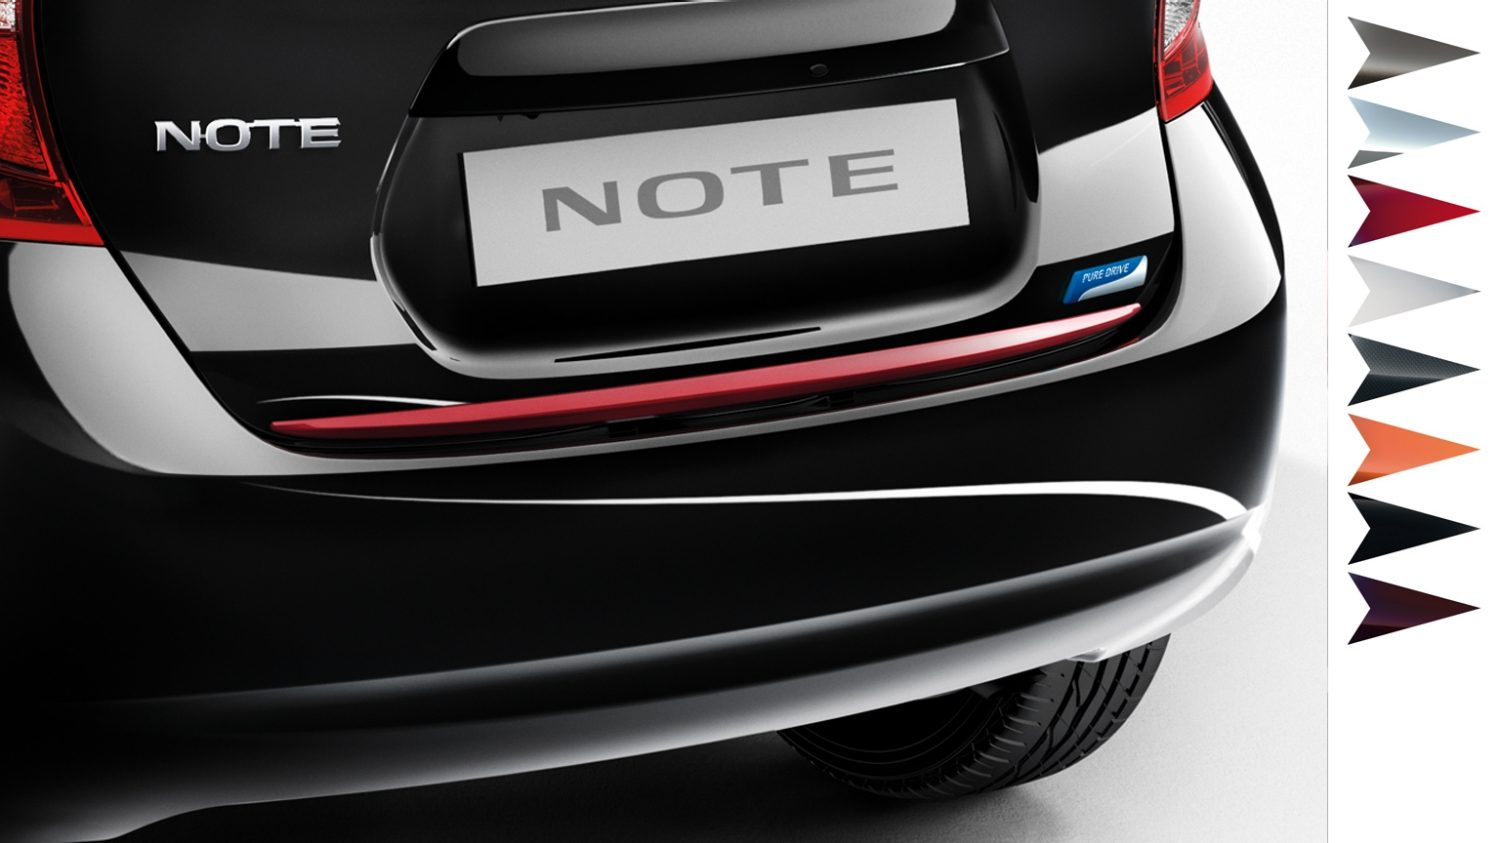 accessoires nissan note voiture familiale citadine nissan. Black Bedroom Furniture Sets. Home Design Ideas